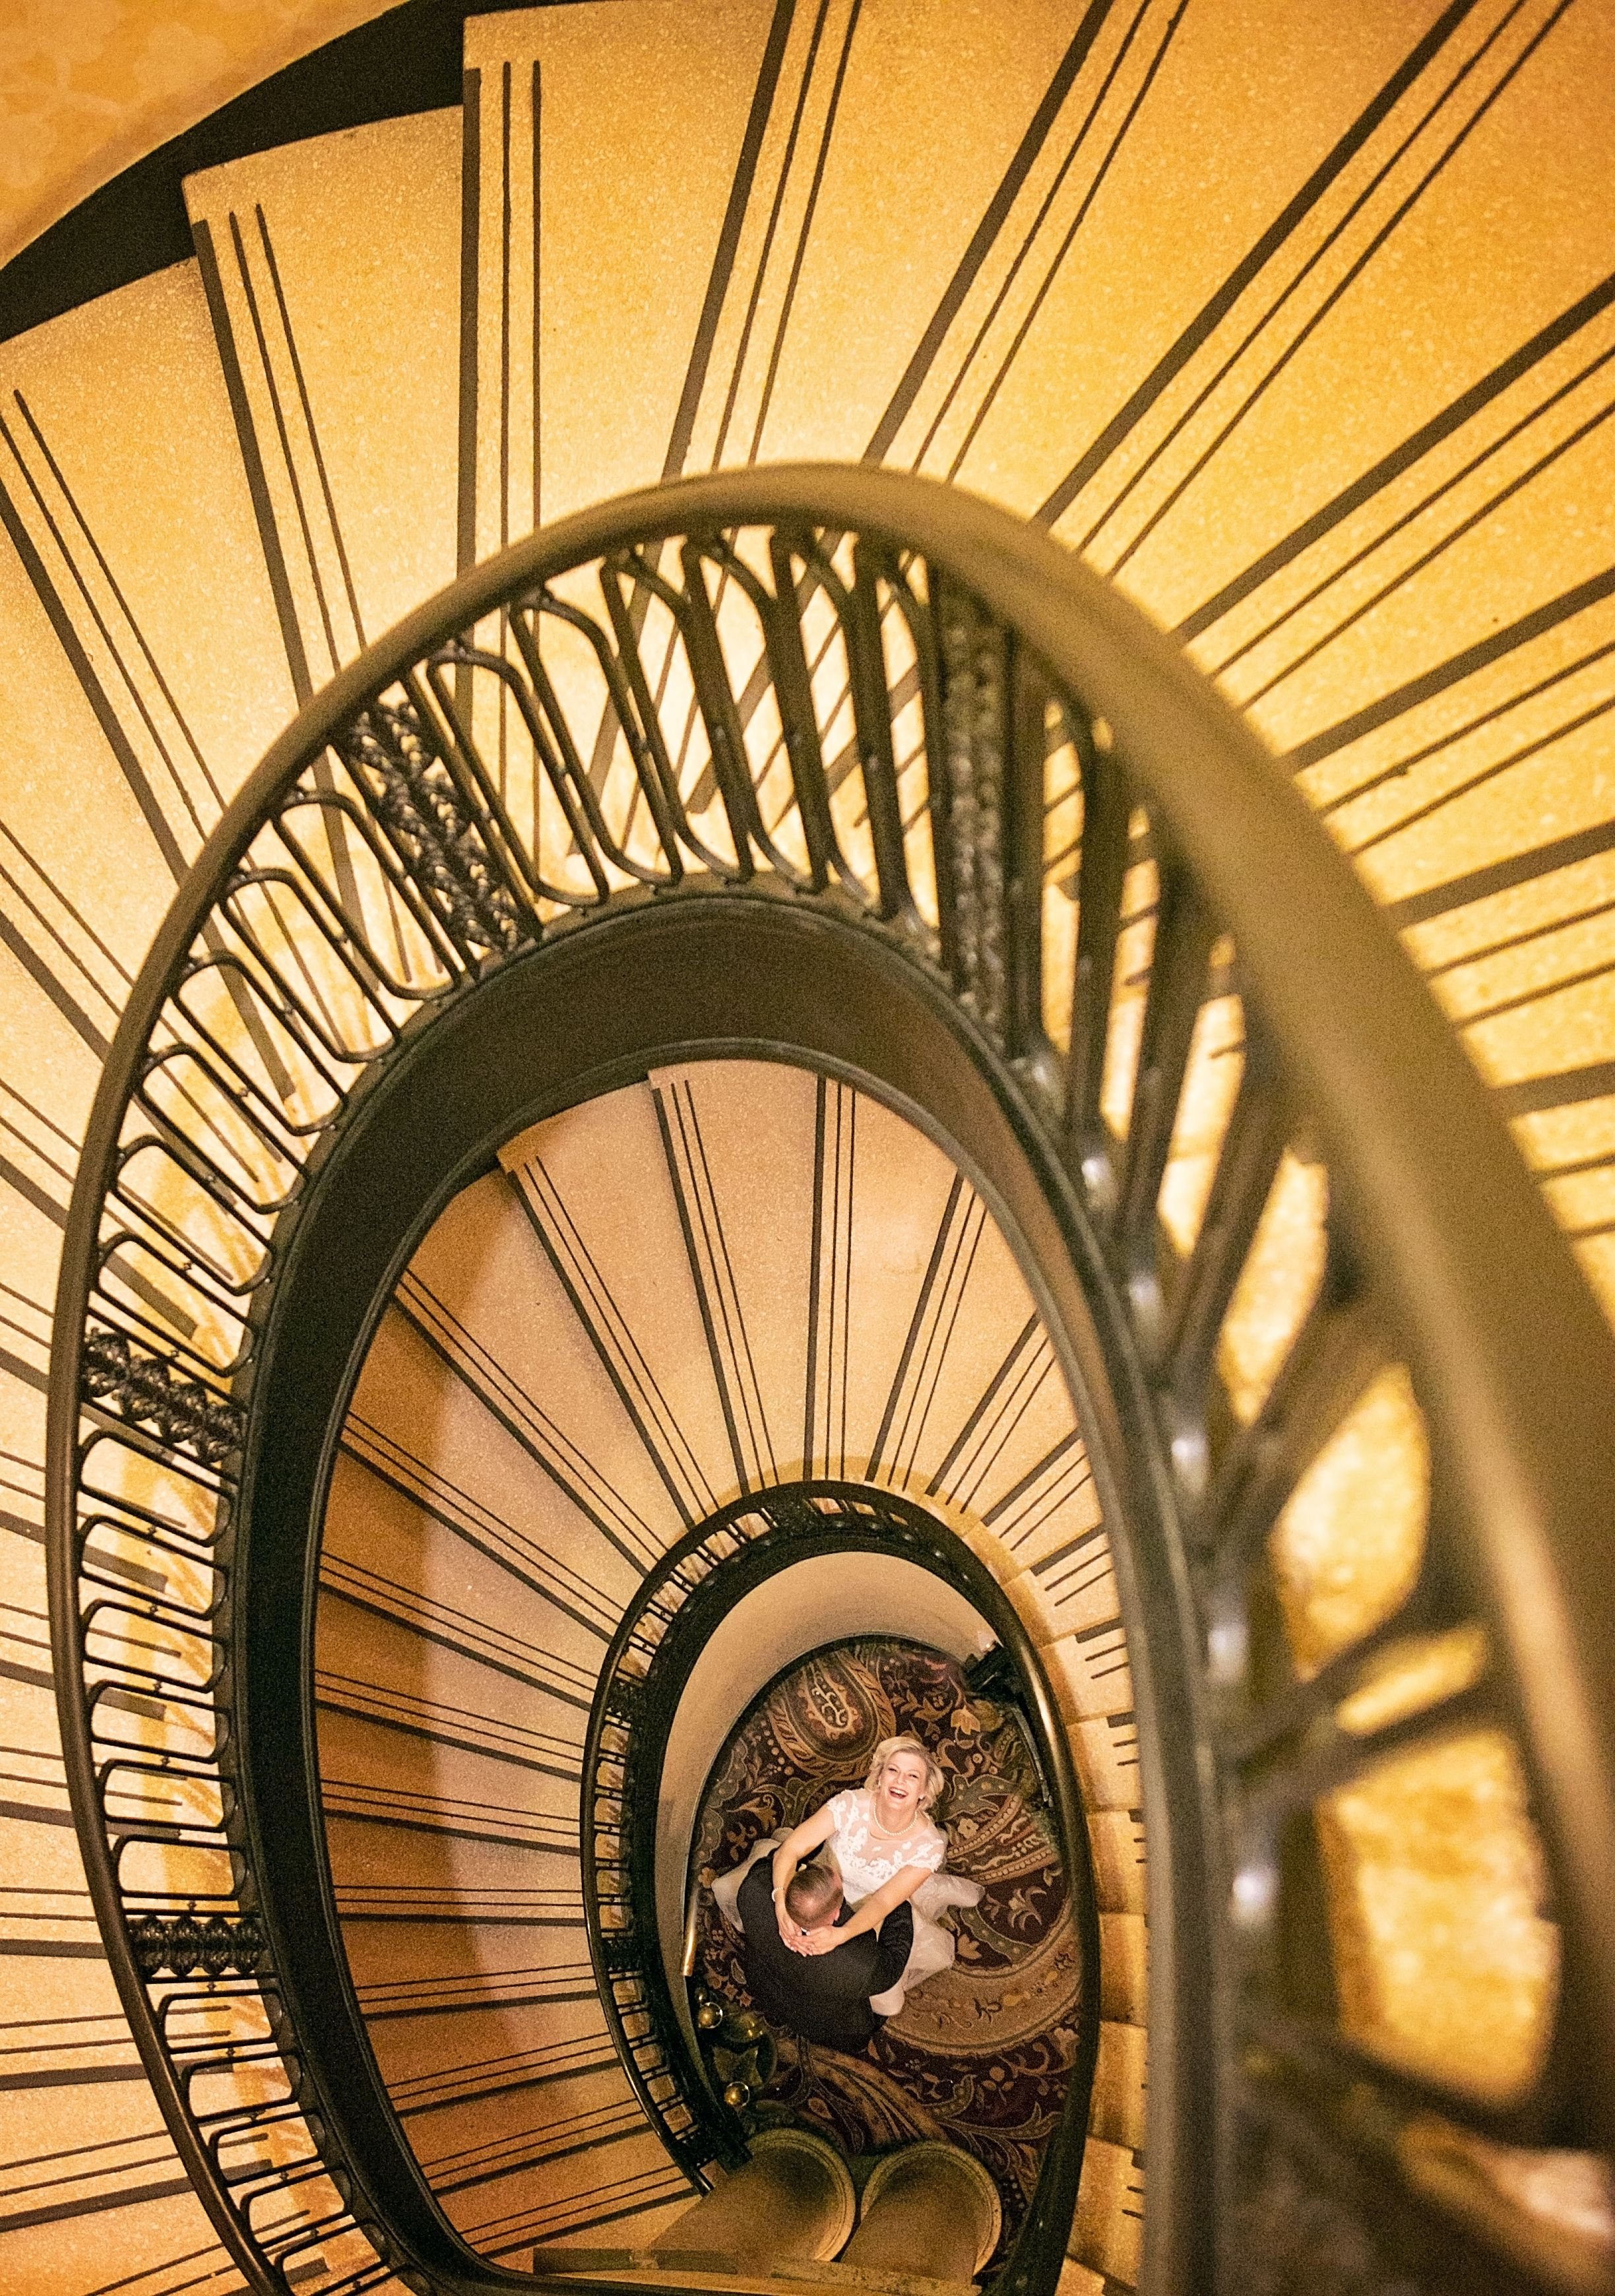 Beautiful Spiral Staircase Wedding Photo. Chicage, IL Wedding Photography Http://www.